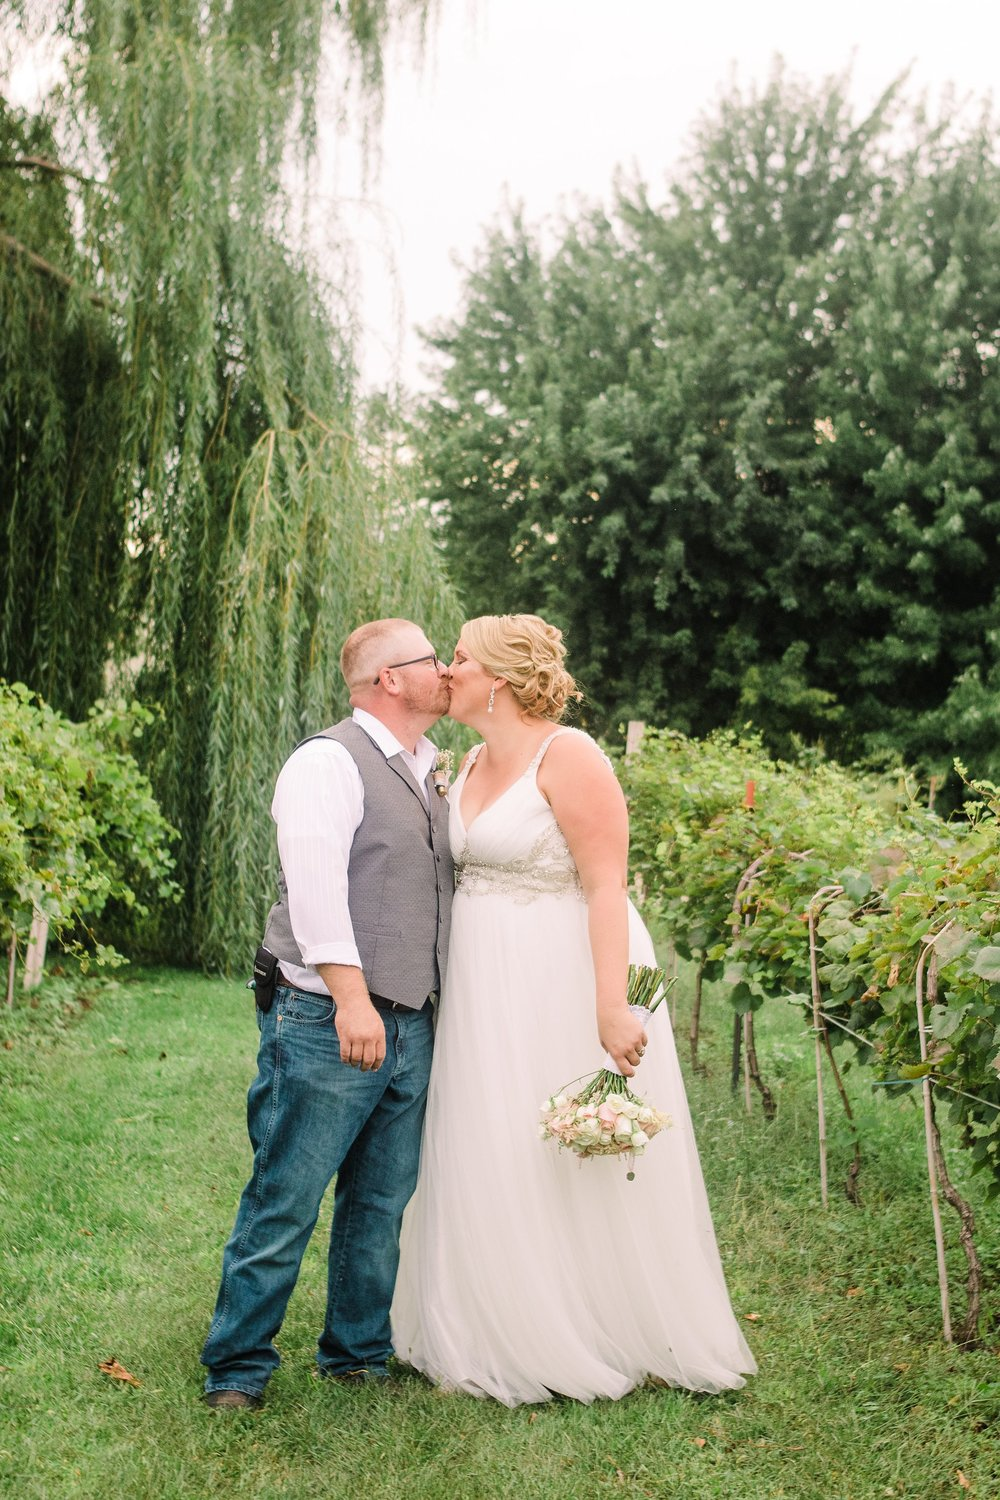 Wedding-Photography_river valley orchard and winery-humboldt-Iowa_kissing in vineyard-iowa+wedding+photographer.jpeg